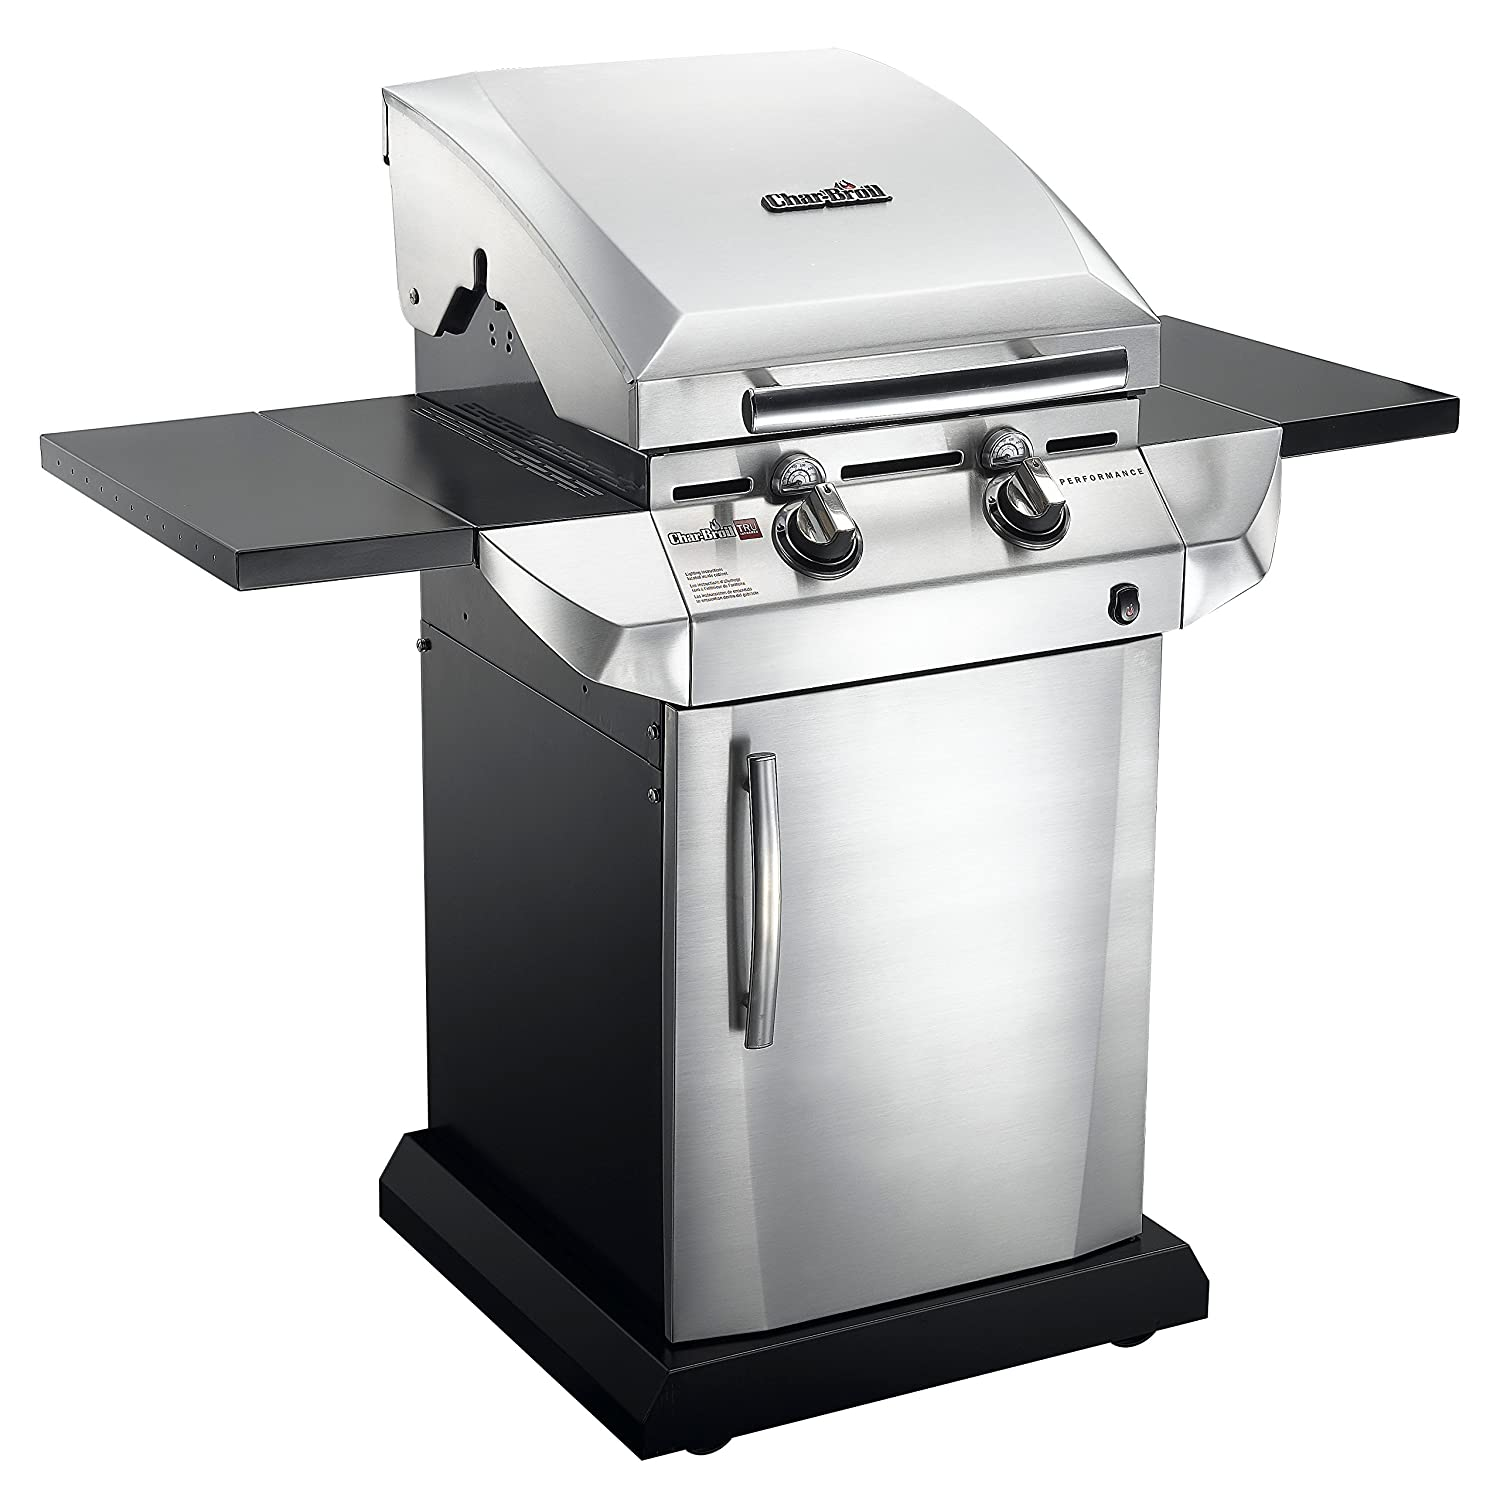 CharBroil Performance TRUInfrared 340 2Burner Gas Grill